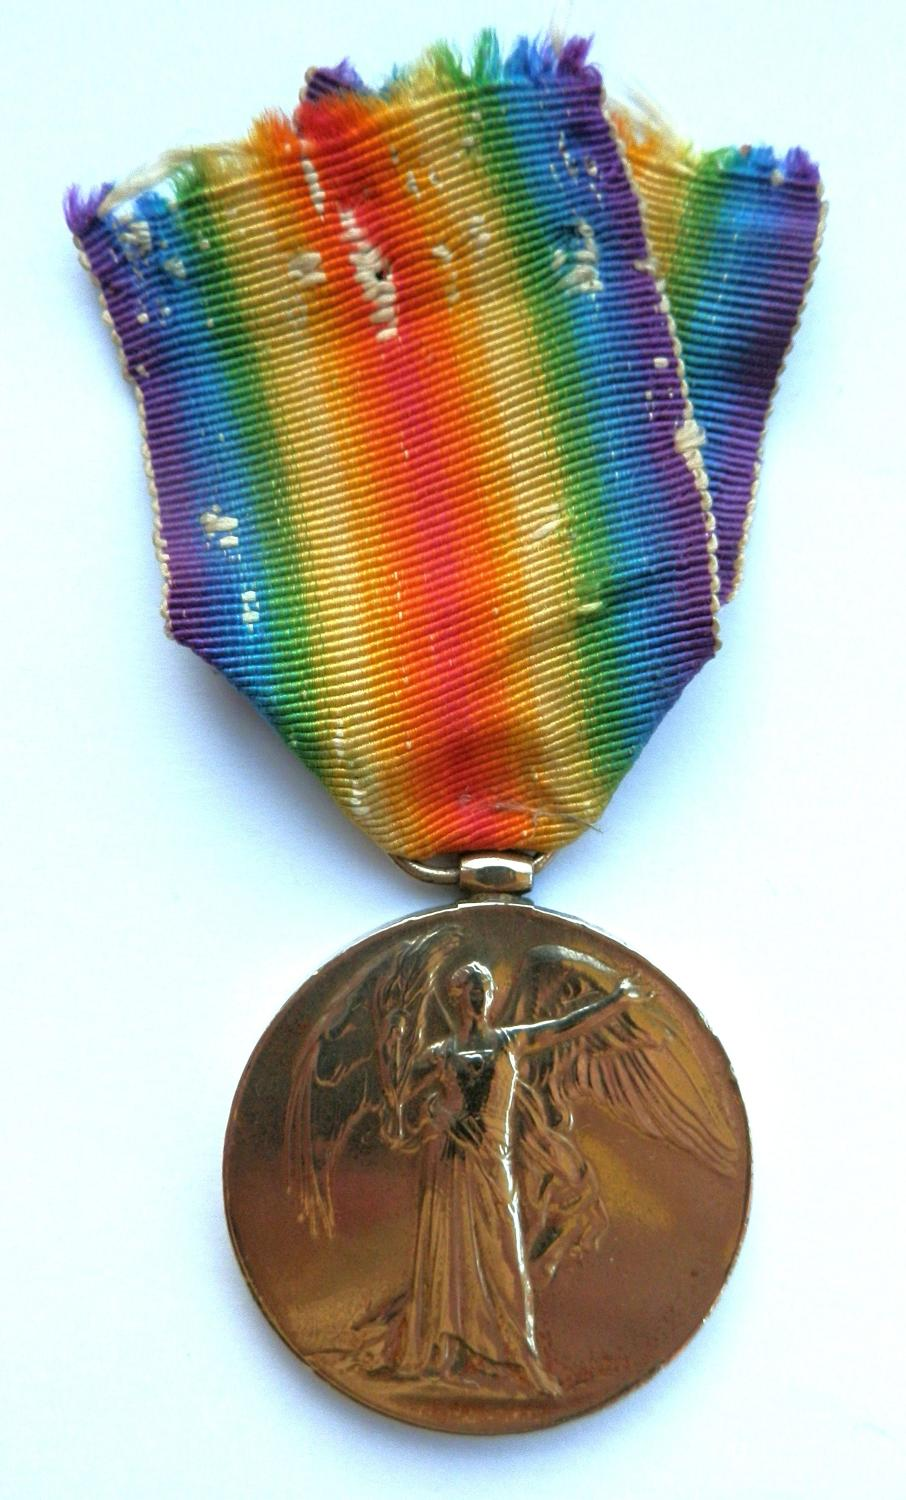 Victory Medal. 3rd A.M. William B. Heigho, R.A.F. & R.N.A.S.